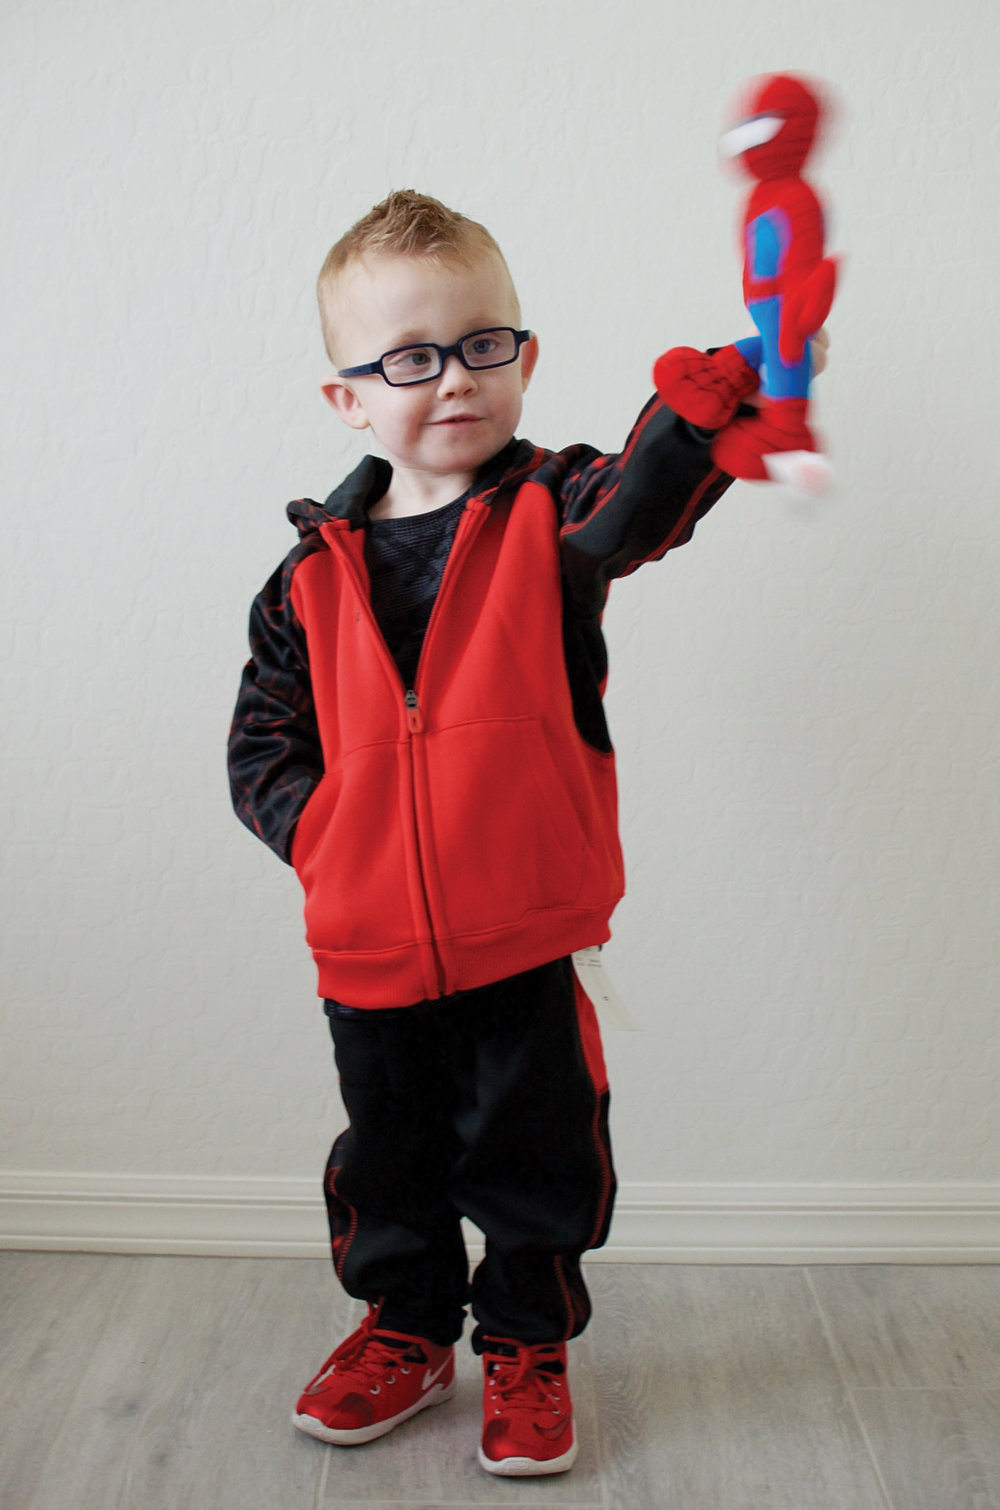 The Reebok tracksuit and long sleeve I couldn't get him out of!